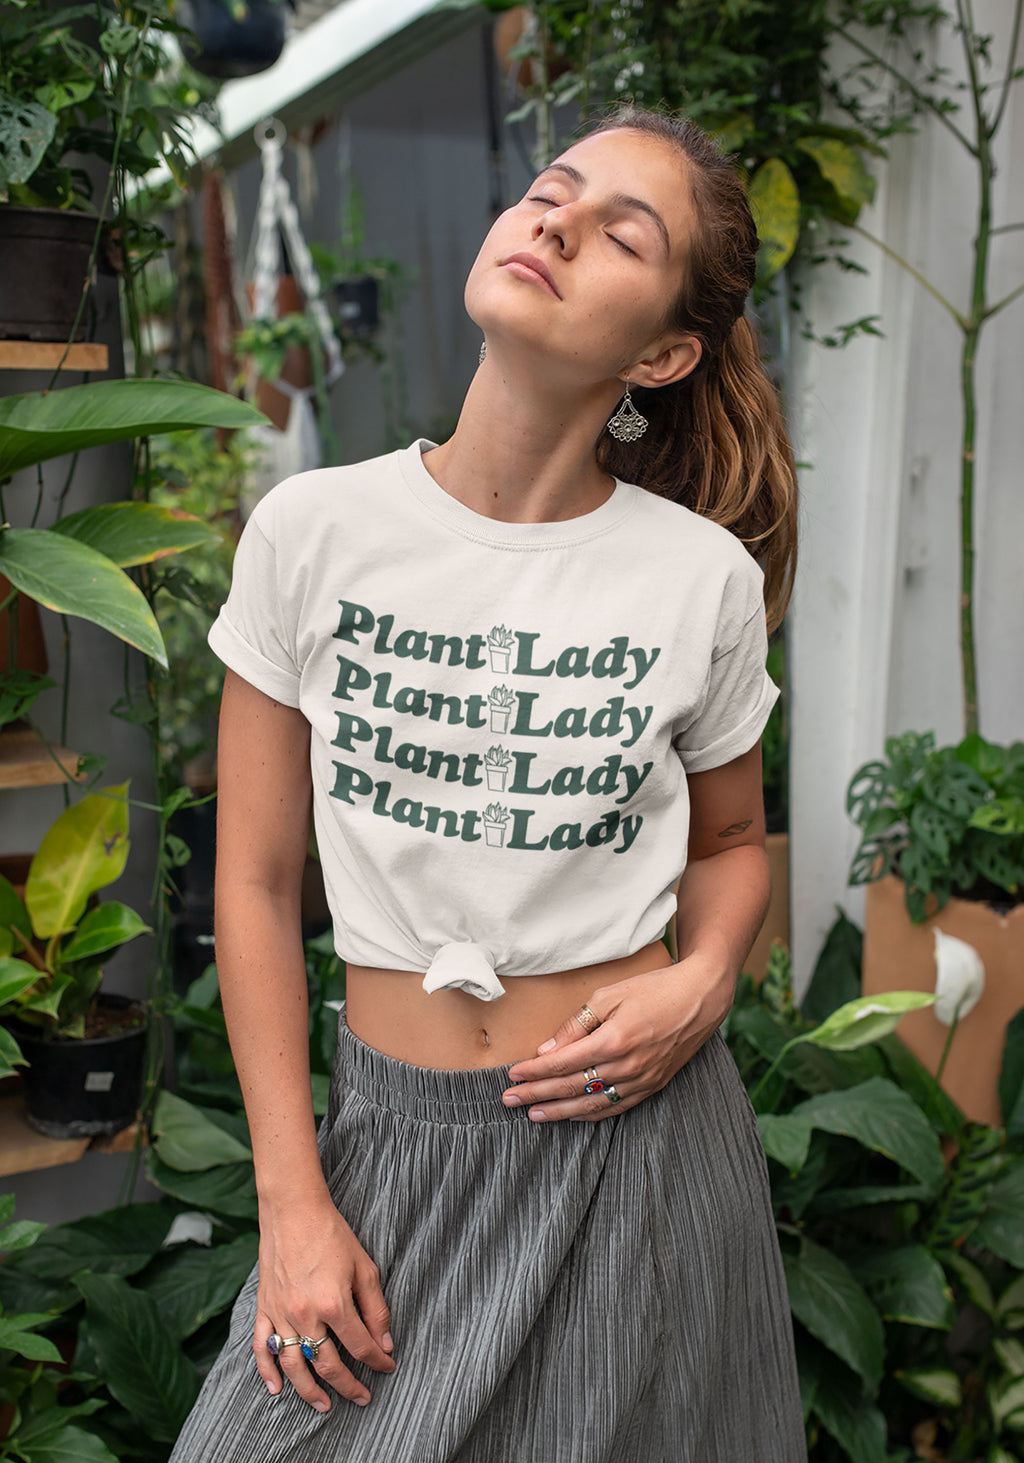 Plant Lady Tee / womens graphic tees / garden plants lover crazy shirt gifts for her / vintage retro shirts with sayings / green thumb